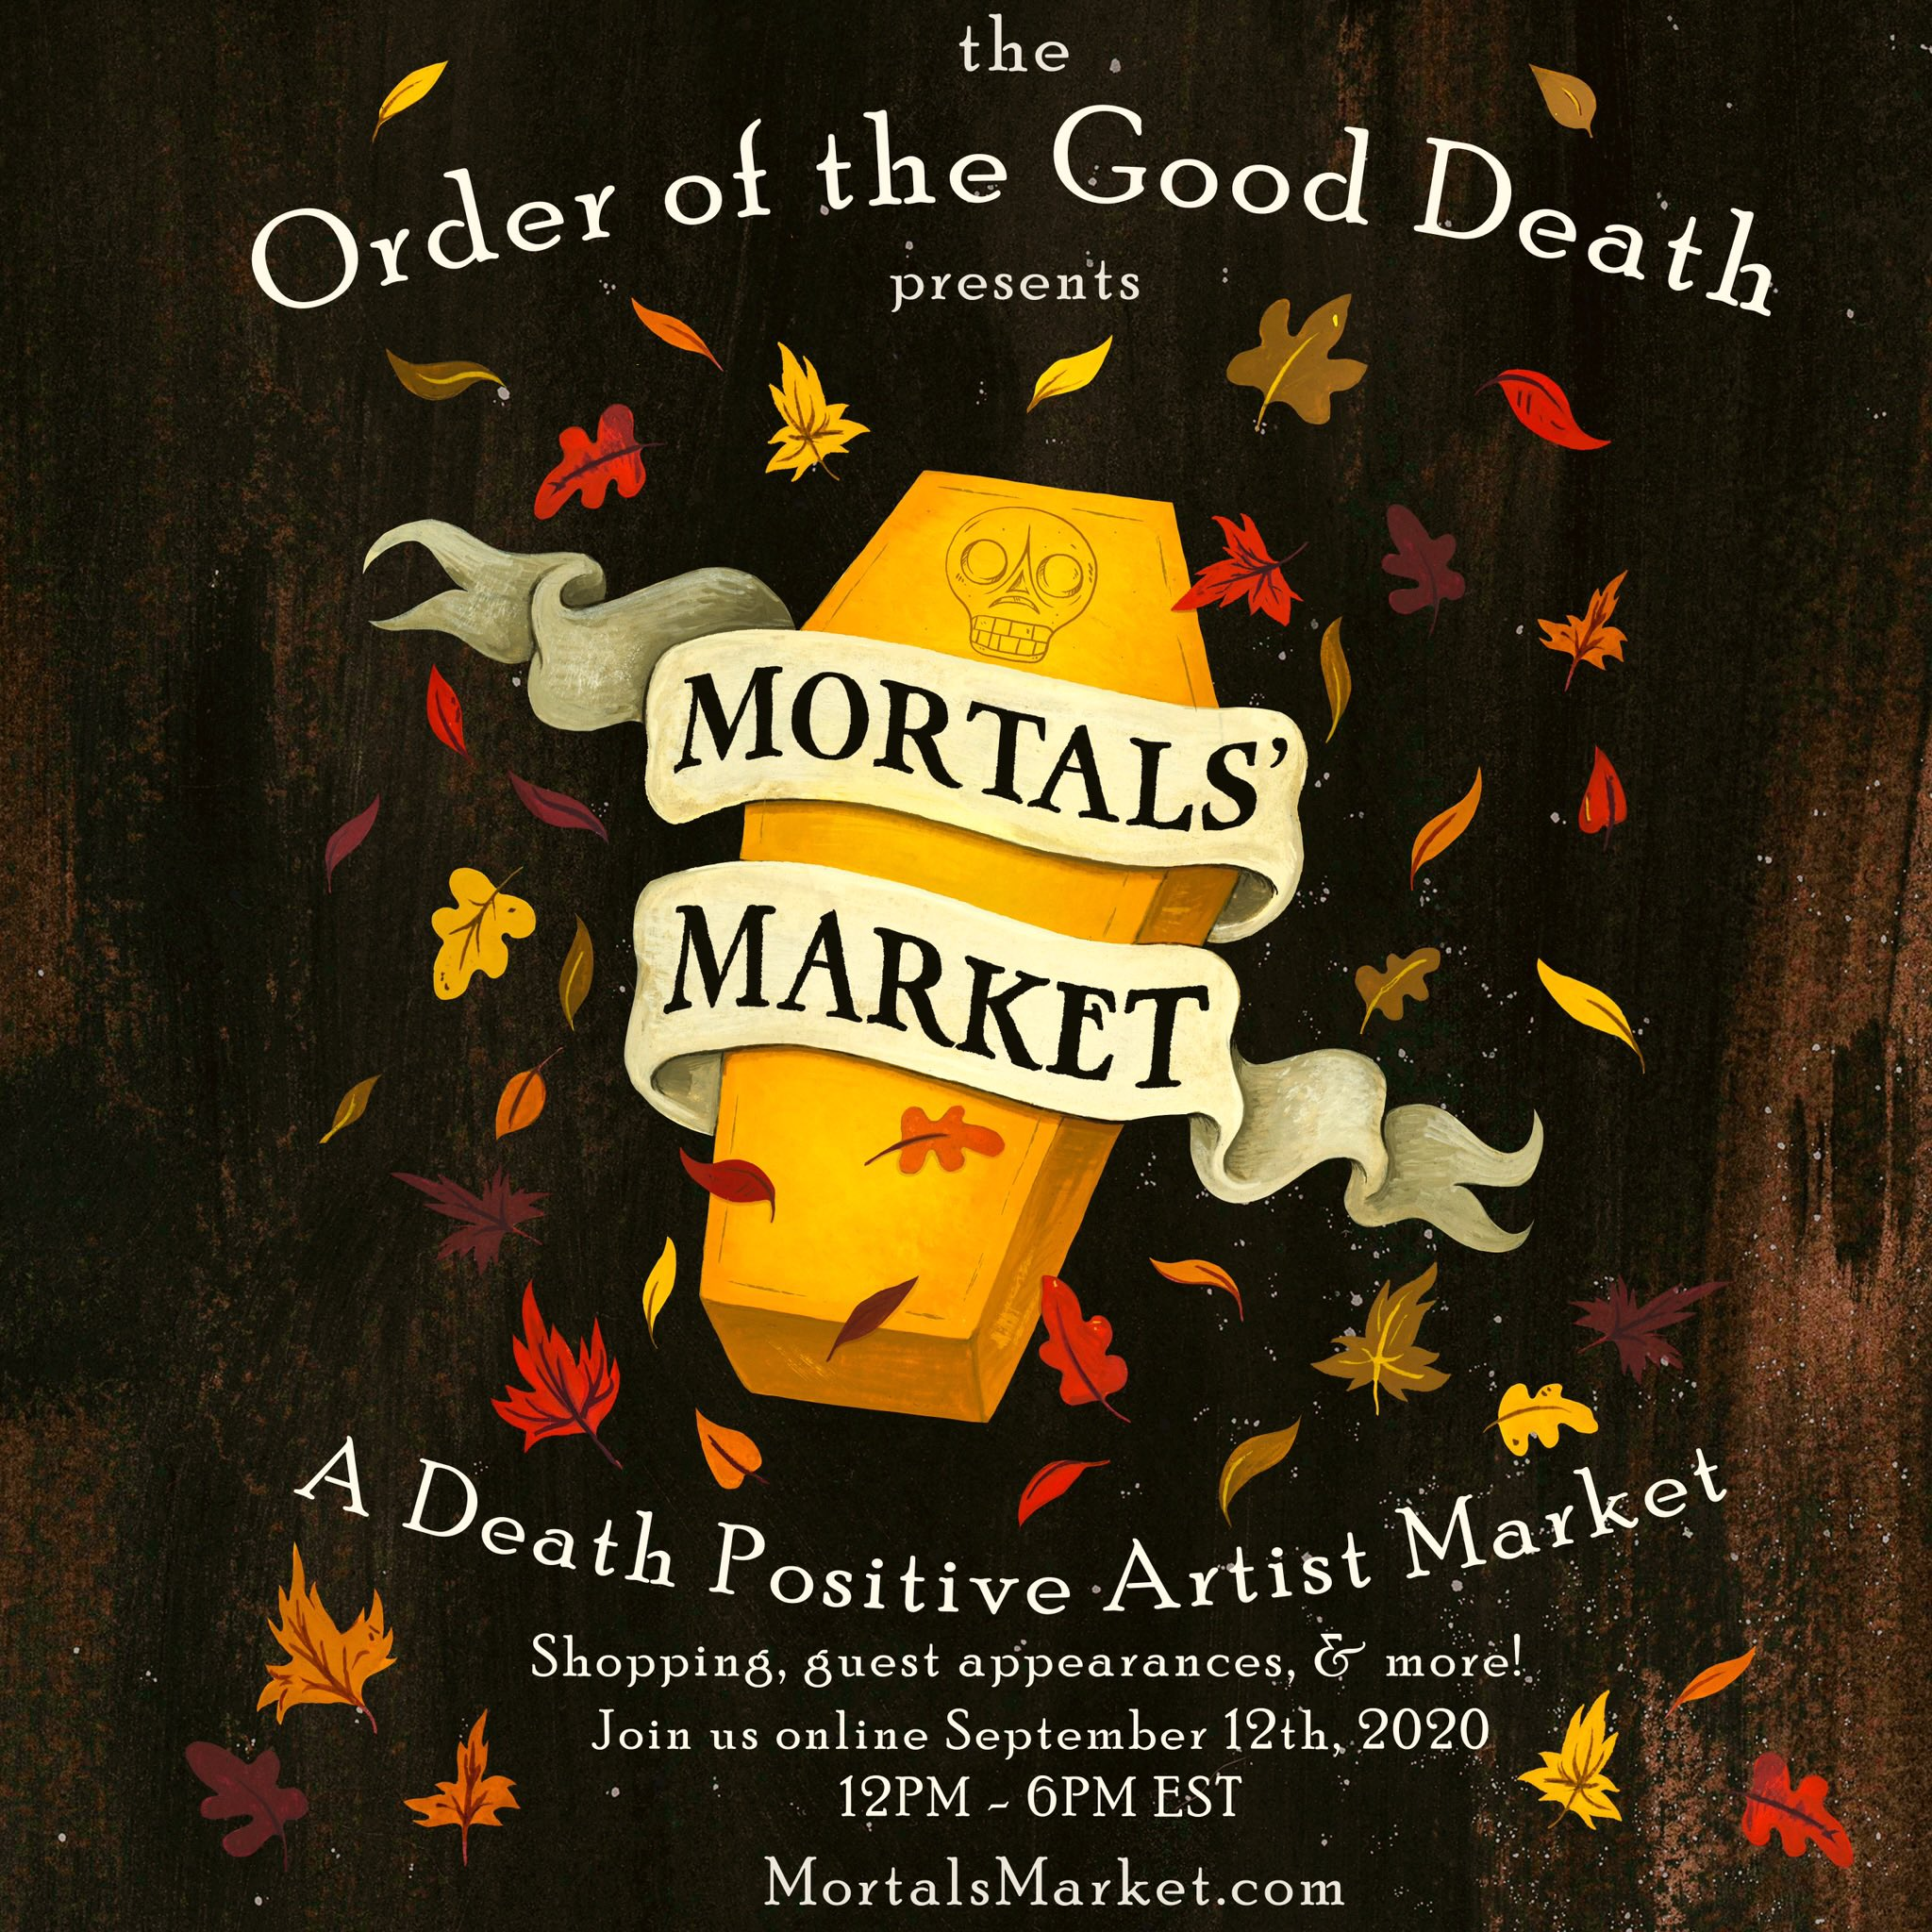 "OrderoftheGoodDeath on Twitter: ""💀🍁ANNOUNCING: Mortals' Market, a virtual  marketplace that celebrates the diversity, artistry, and spirit of the  death positive movement. Coming September 12th! https://t.co/FLrizkZ1yq…  https://t.co/ggmlAl8obu"""